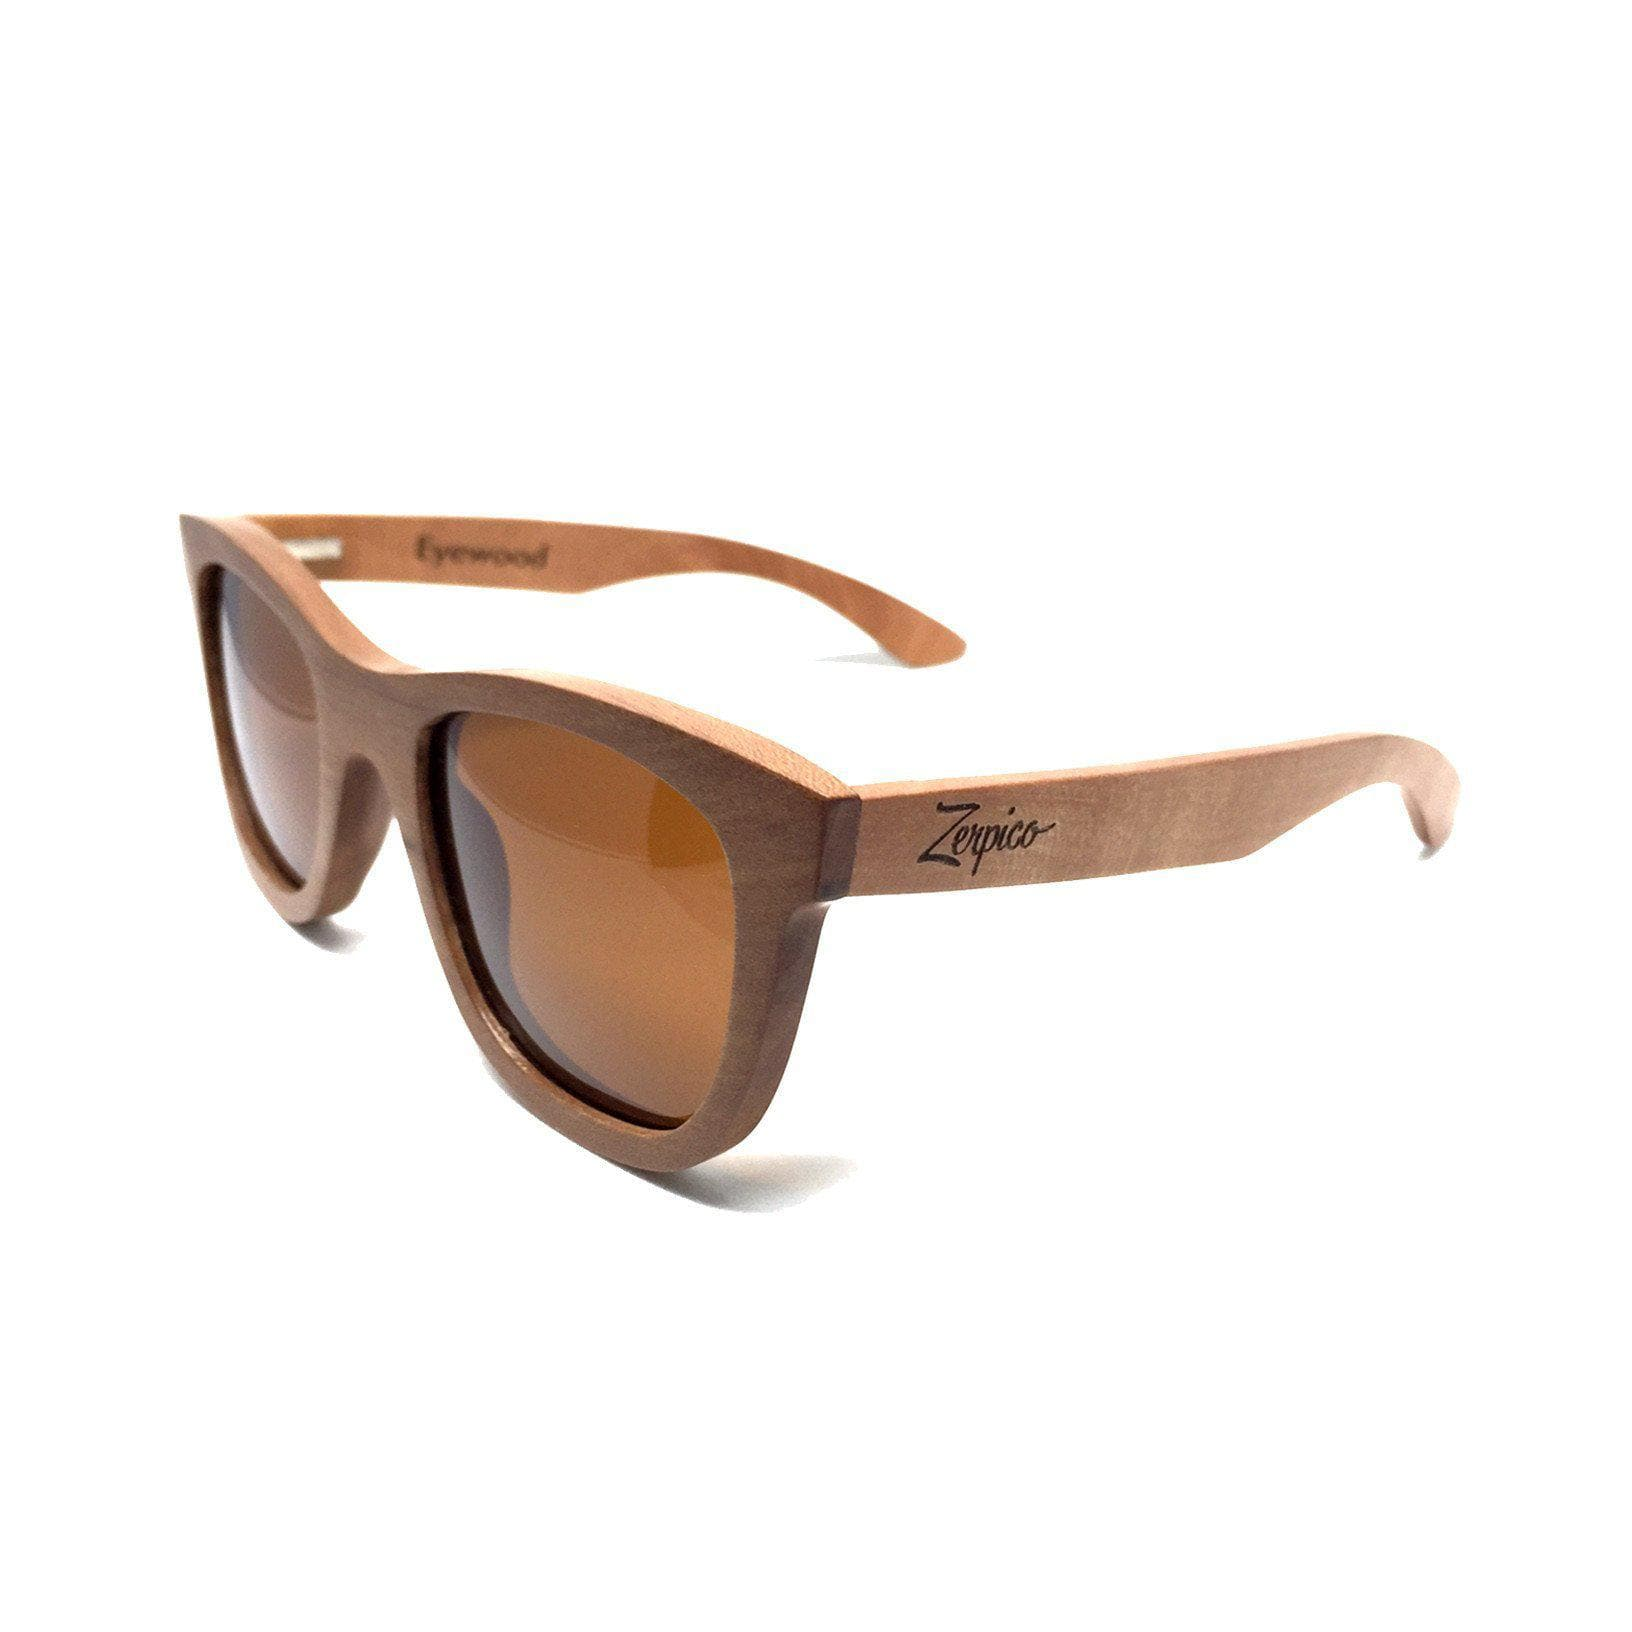 Eyewood Wayfarer - Waki - All wooden sunglasses